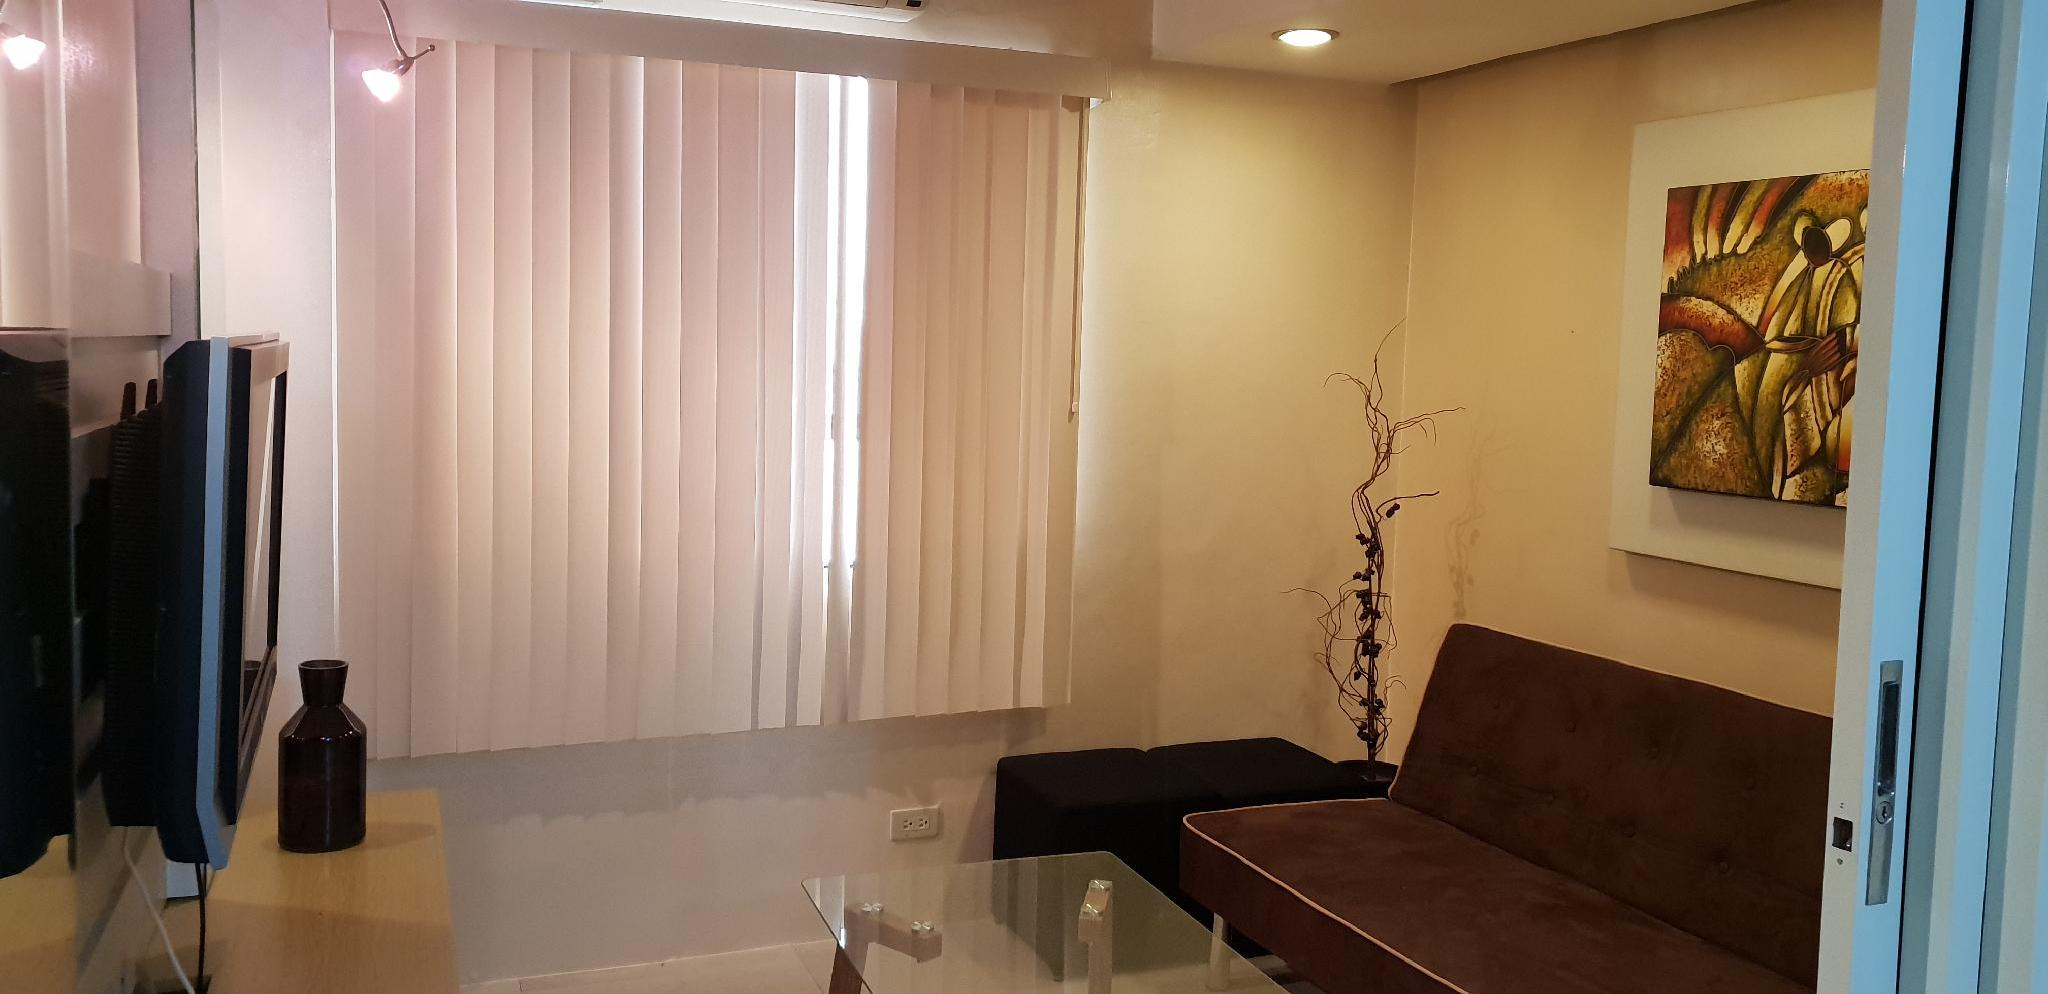 Condo in Eastwood where you really feel at home